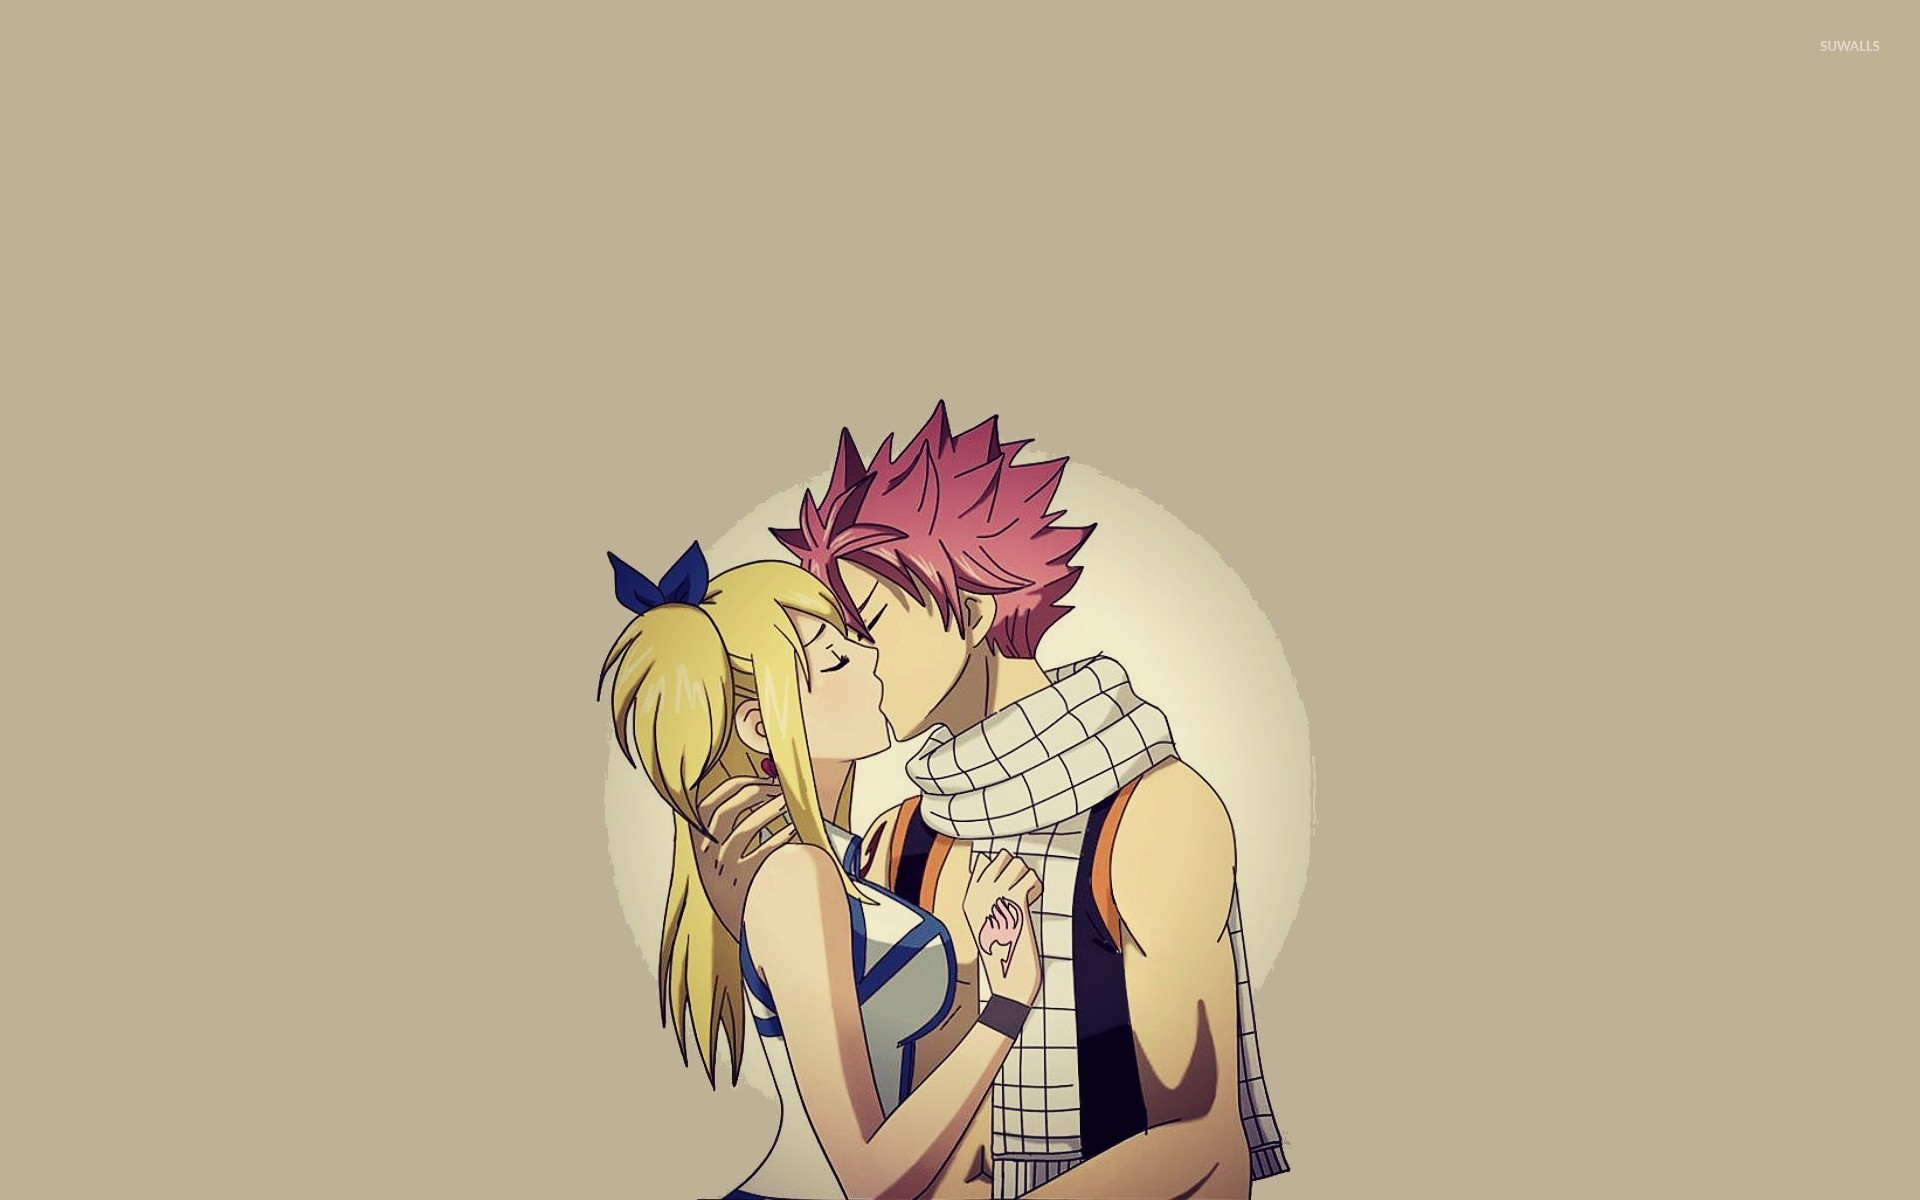 Lucy and Natsu   Fairy Tail wallpaper   Anime wallpapers   26427 1920x1200